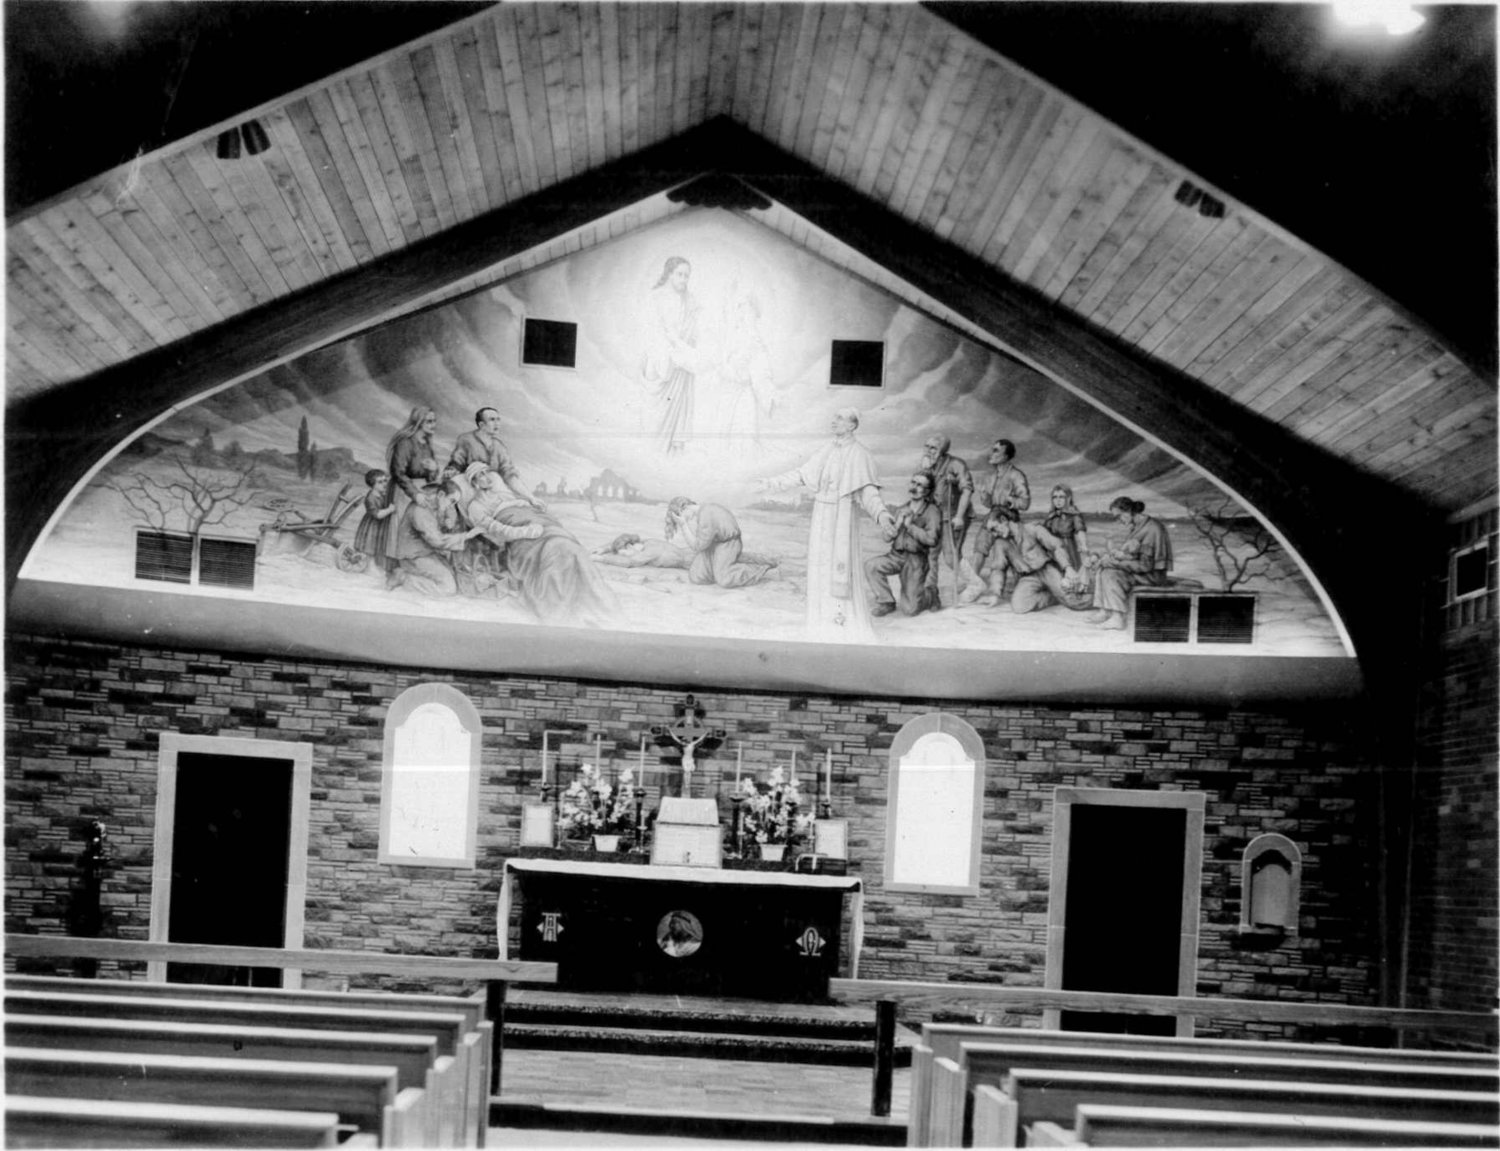 This file photo from May of 1958 shows what the Shikles Auditorium looked like when it was the chapel for the former La Salette Seminary in Jefferson City. The altar is now used for outdoor Masses at the Shrine of Our Lady of Sorrows in Starkenburg.